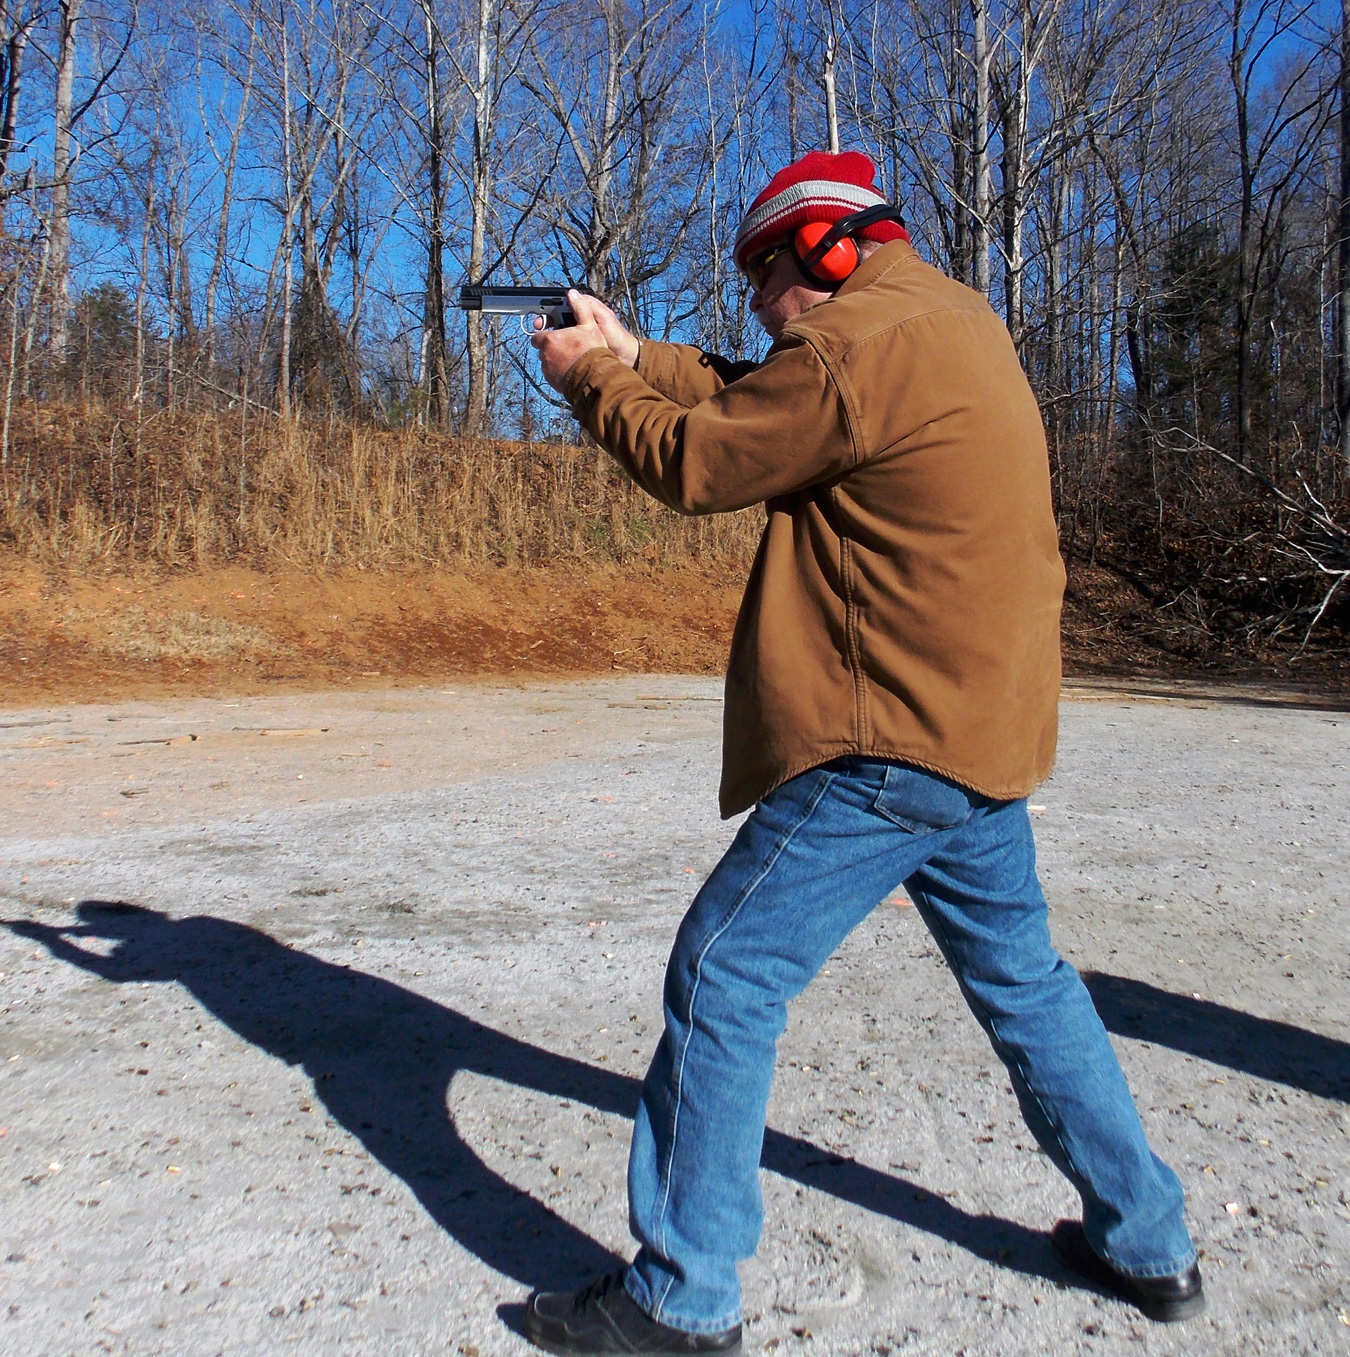 Bob Campbell shooting the EAA Elite Witness handgun